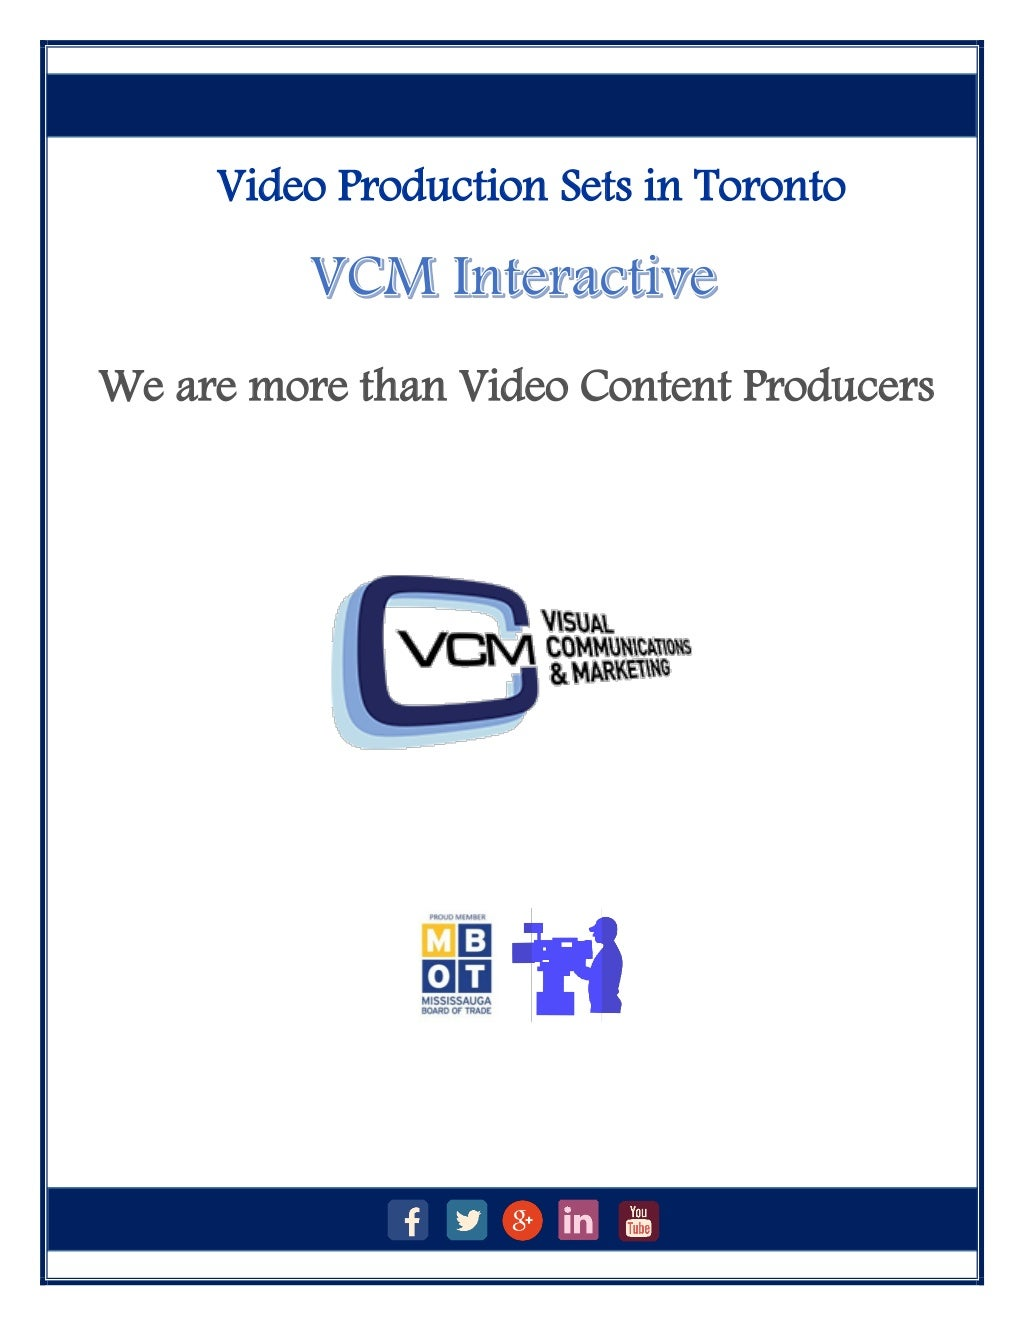 Top 6 ideas for styling for video production sets in toronto